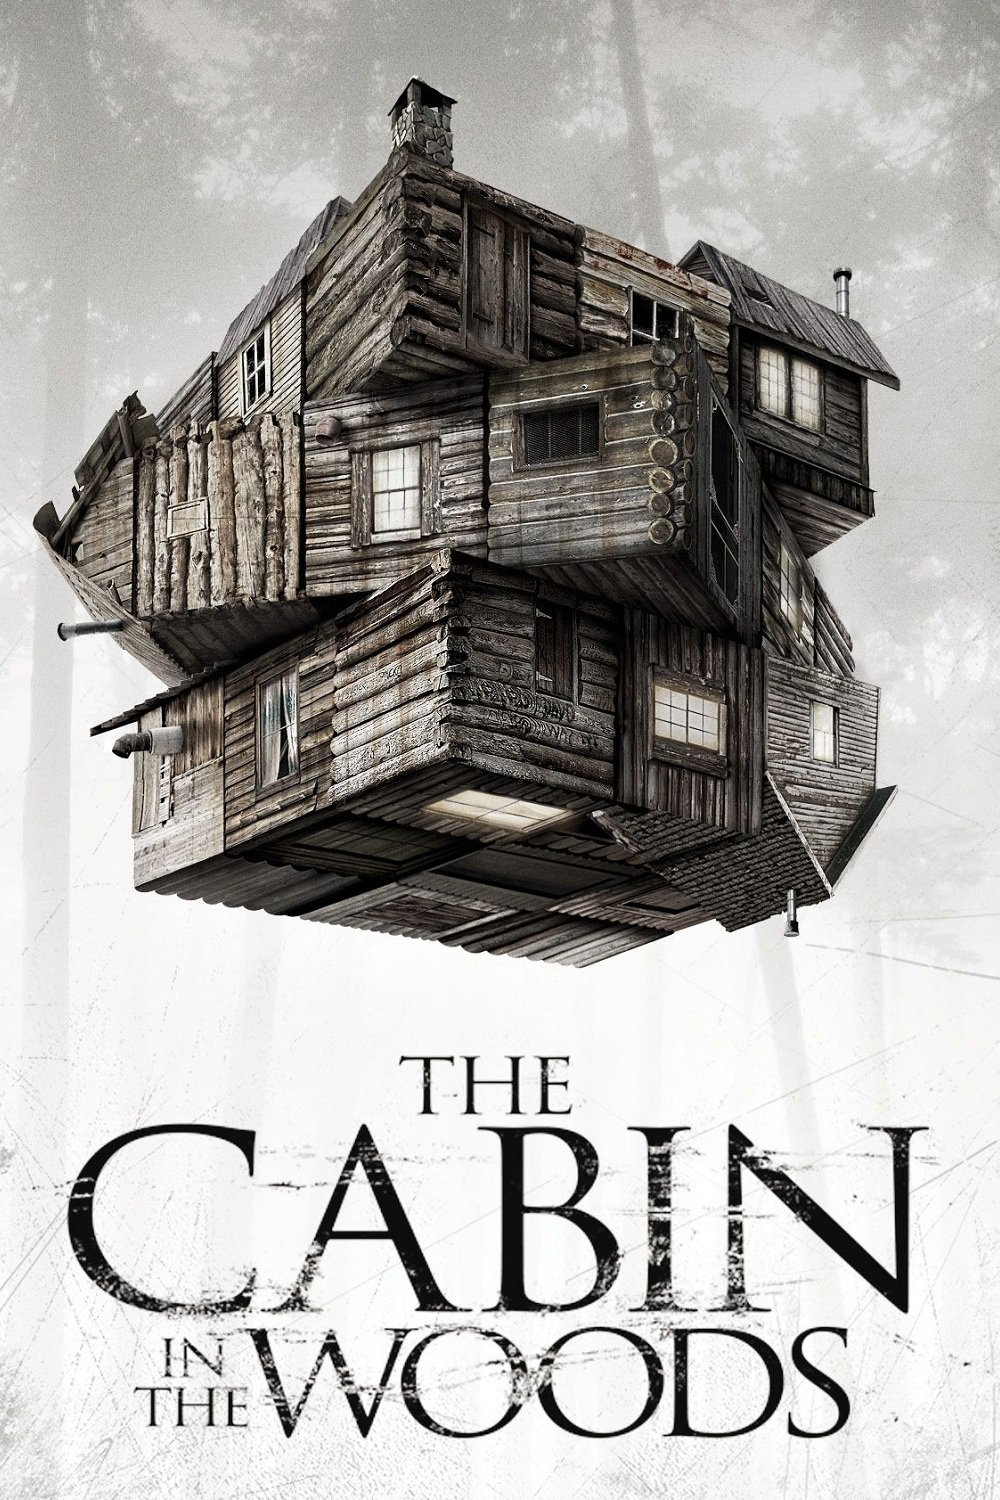 Poster for The Cabin in the Woods (Lovecraft t-shirt giveaway from Out of Print.)